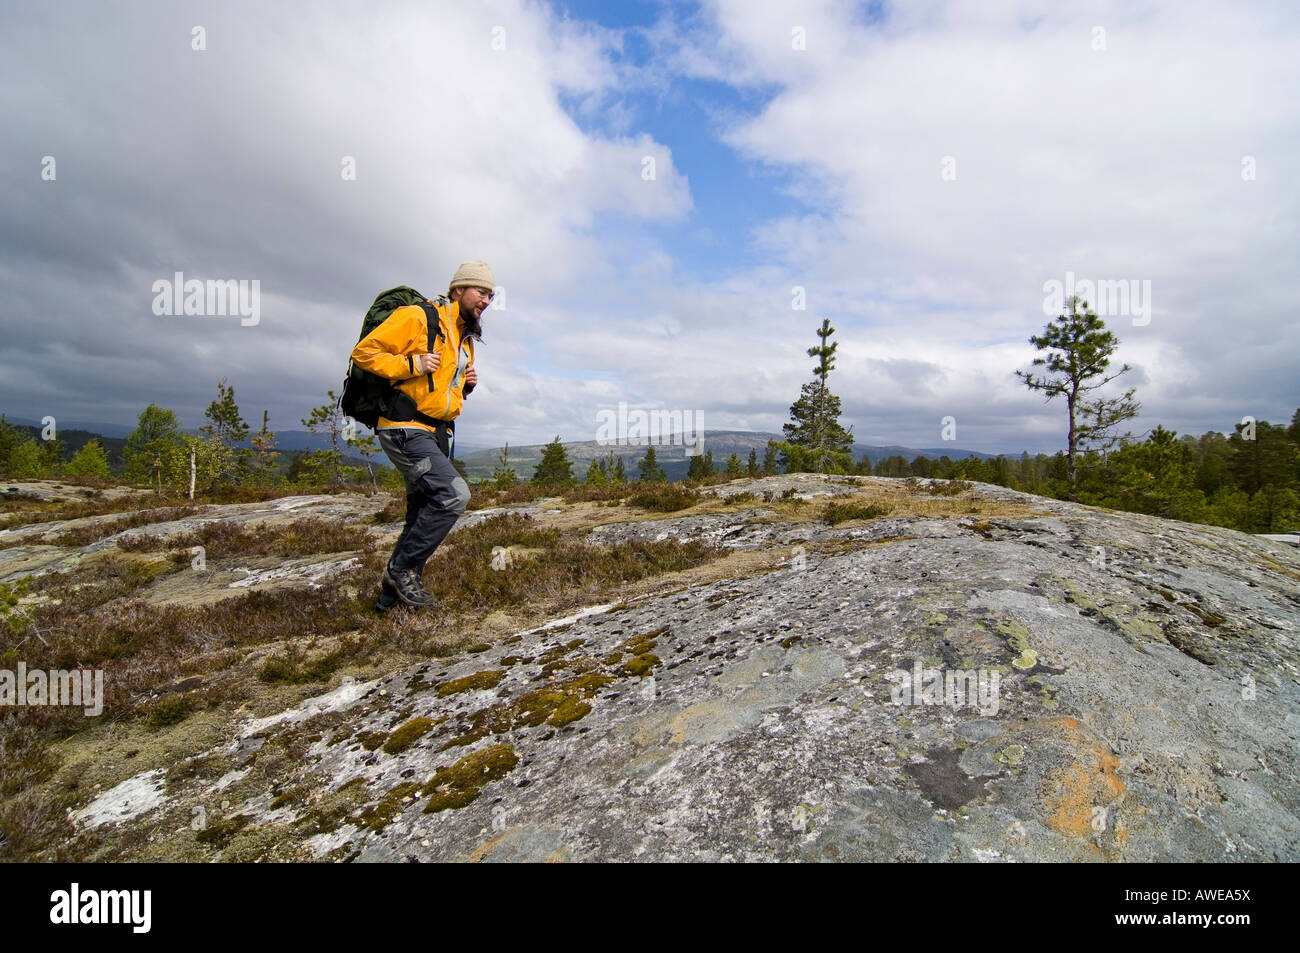 Hiker, Fjell, Jotunheimen National Park ('Home of the Giants Nat'l Park), Norway, Scandinavia, Europe - Stock Image